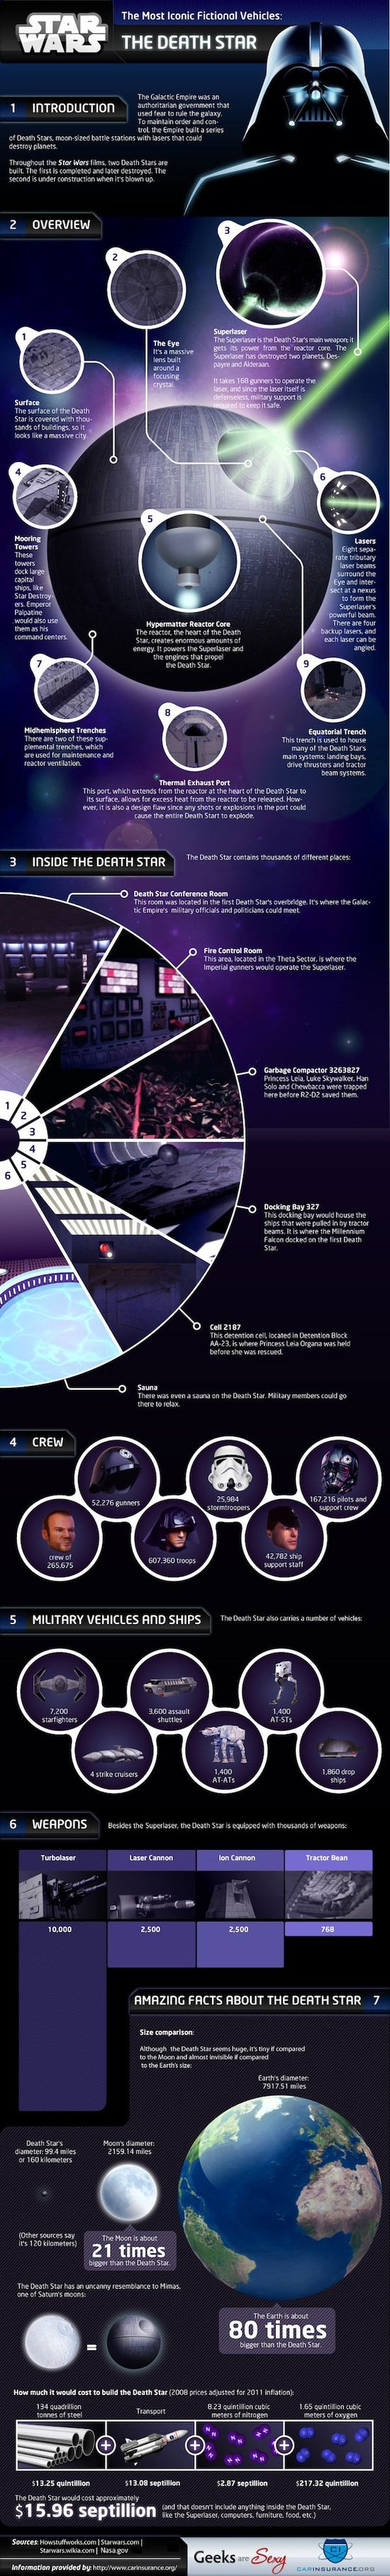 The Star Wars Death Star Infographic